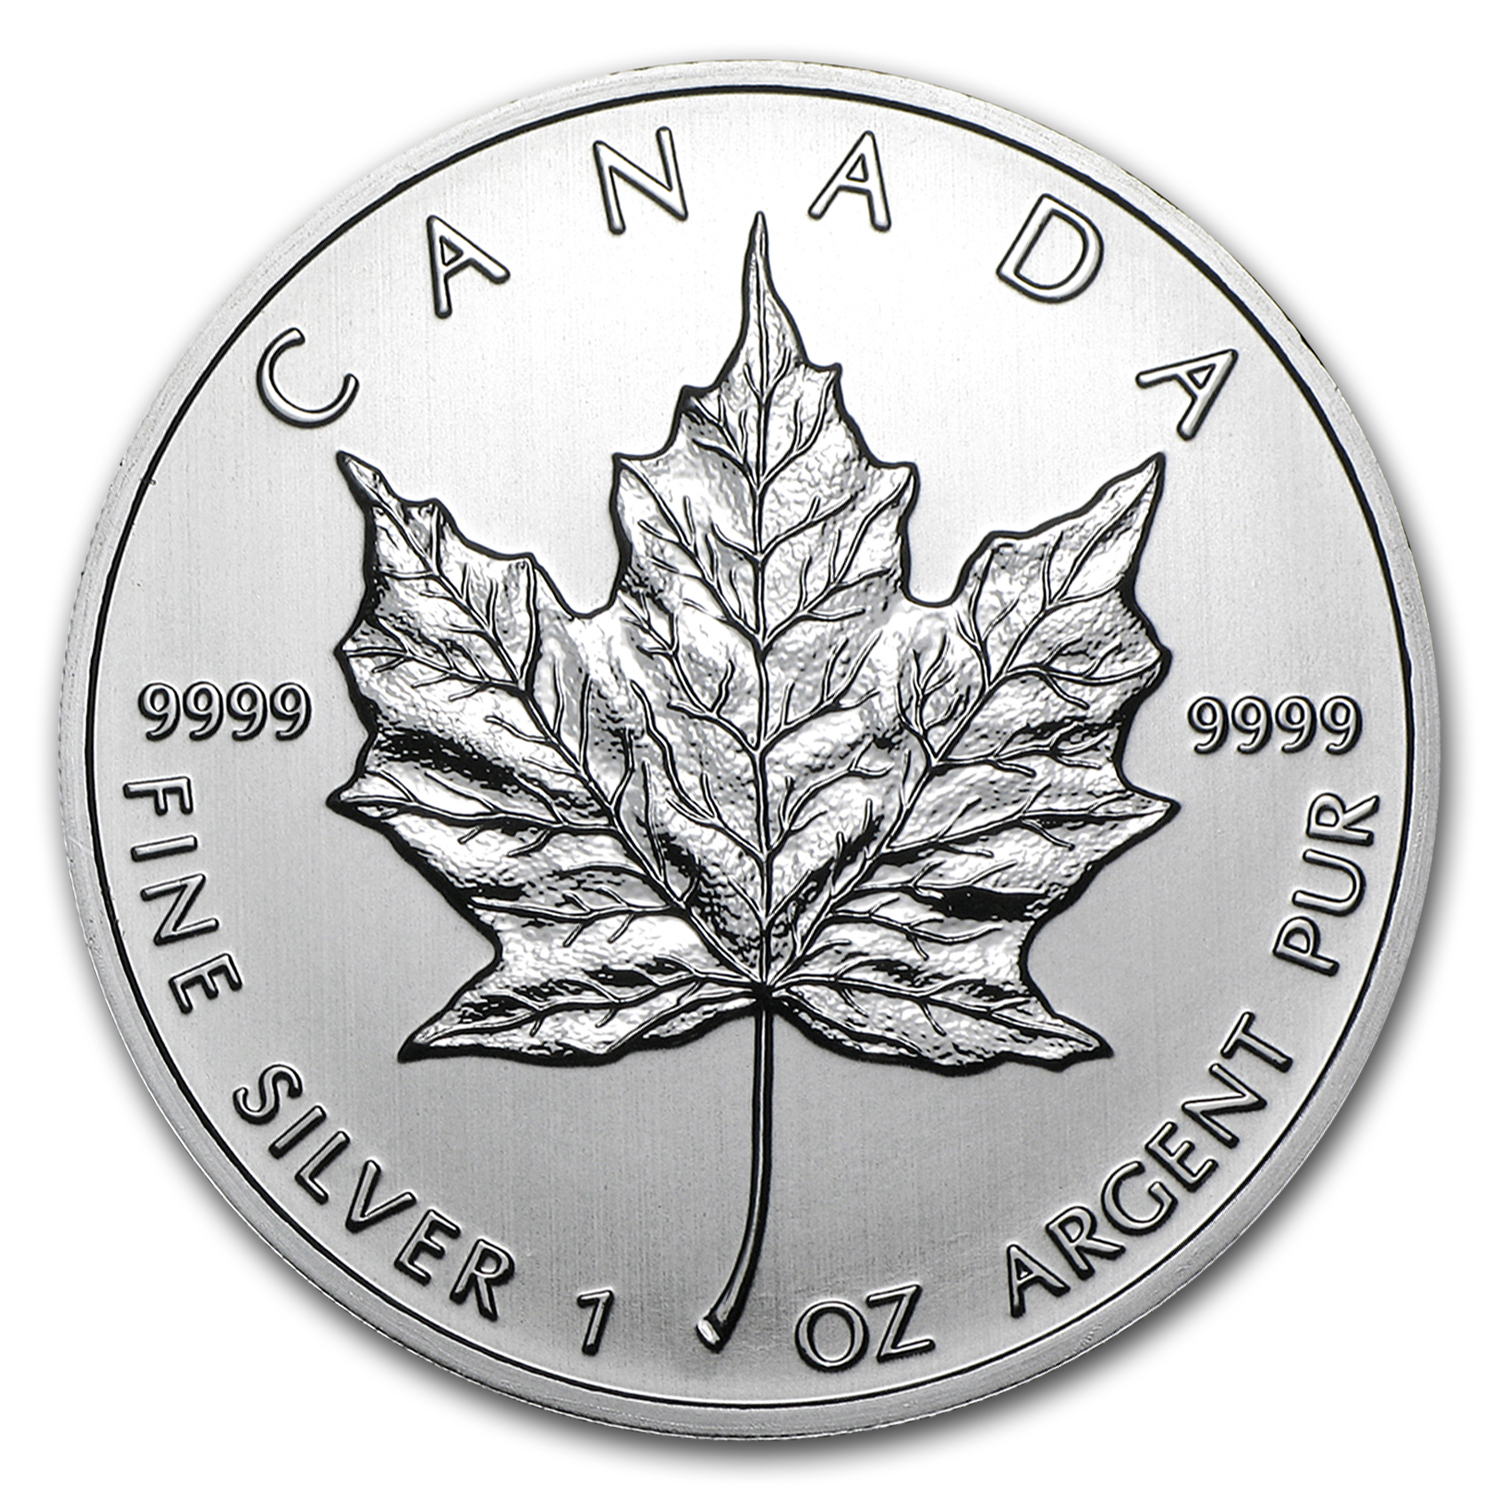 2012 Canada 1 oz Silver Maple Leaf BU